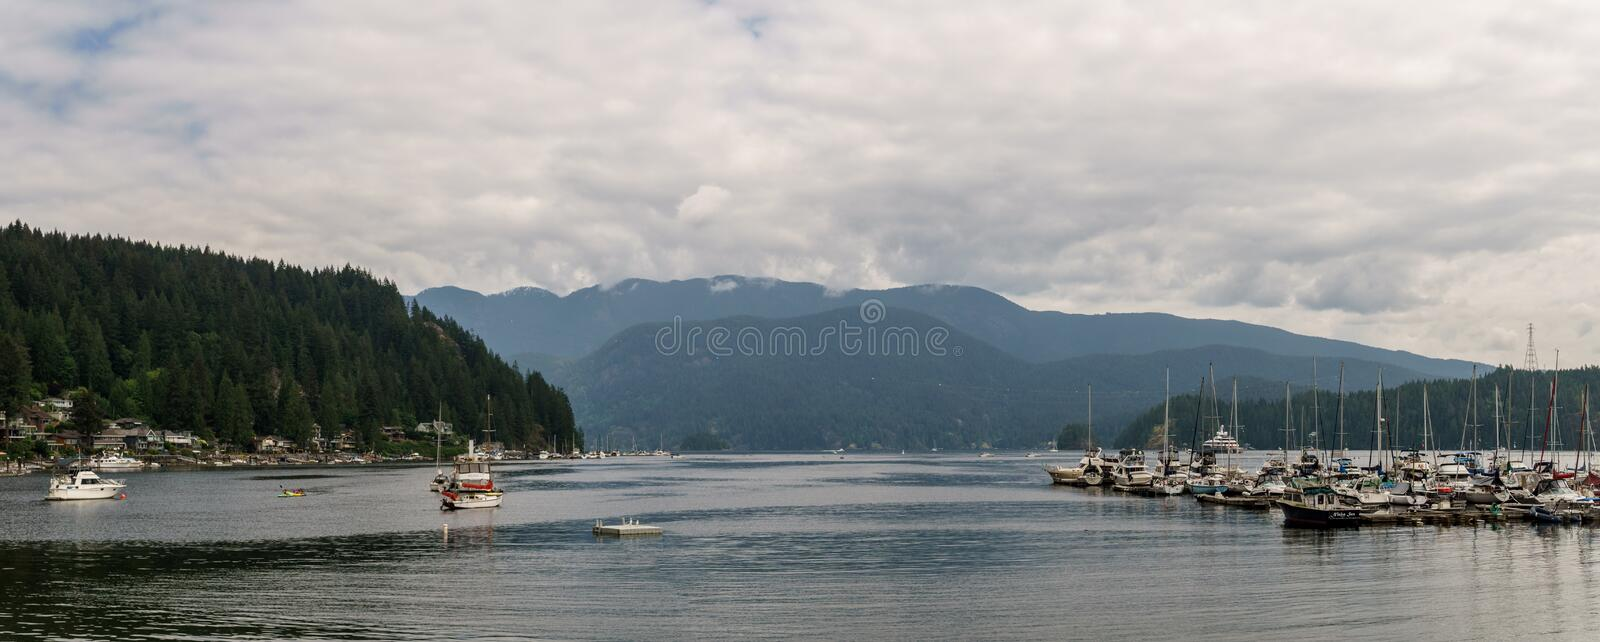 NORTH VANCOUVER, CANADA - May 21, 2018: View of Indian Arm with Yachts in Deep Cove stock photos